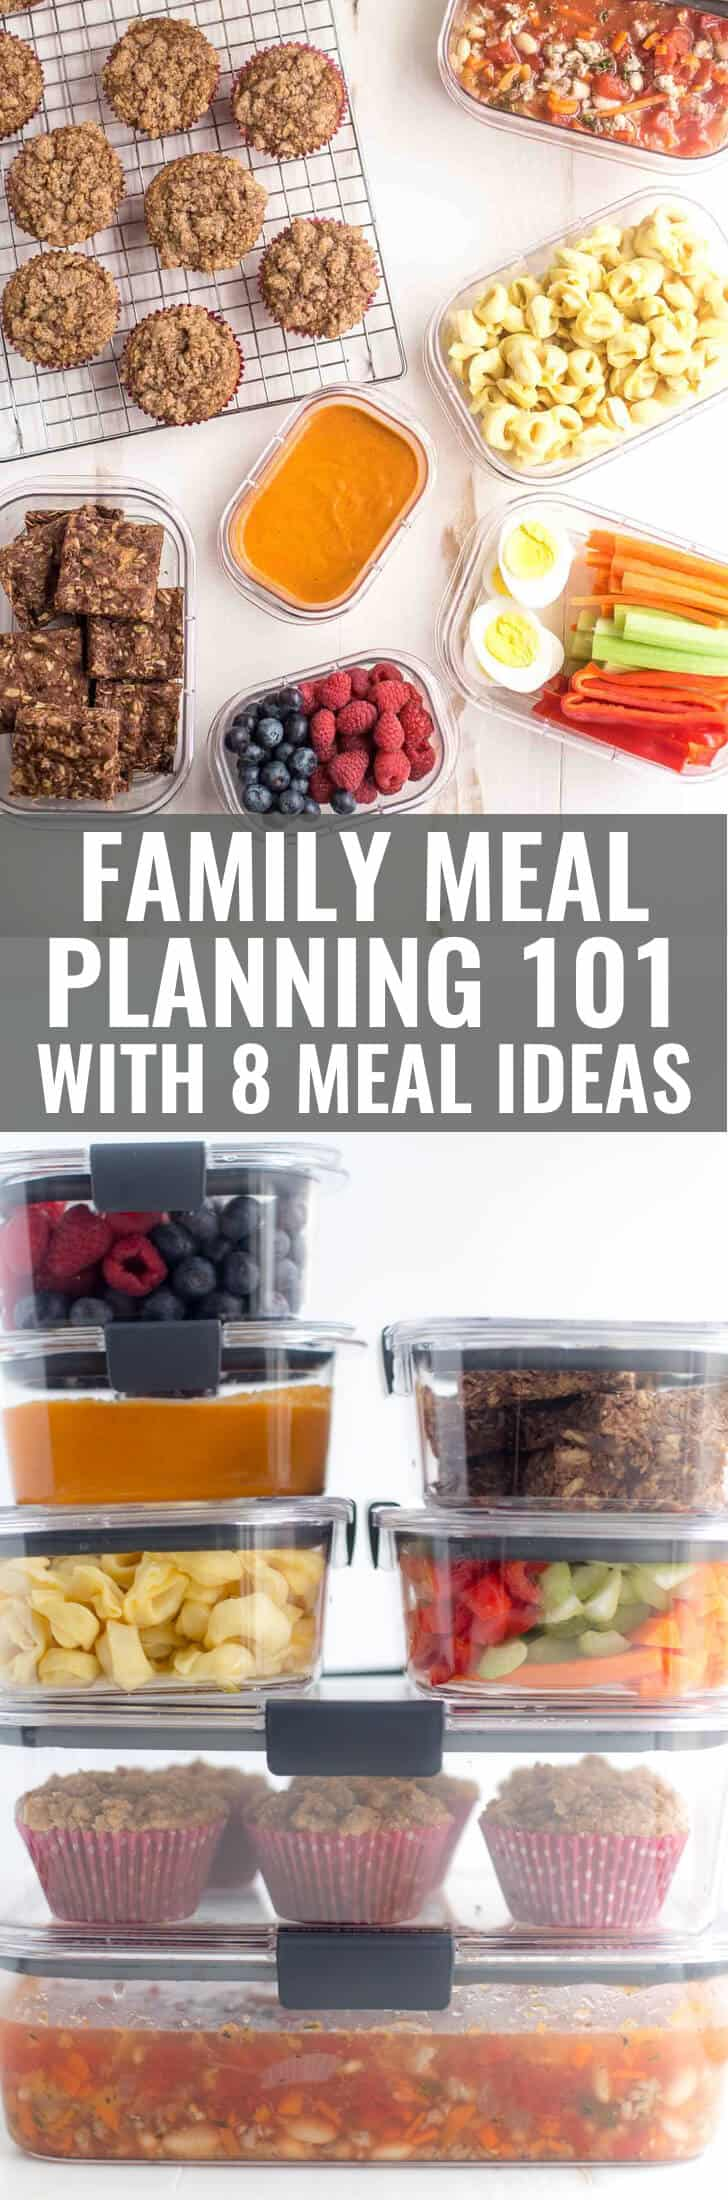 Family Meal Planning Basics with 8 ideas for easy family meals & Meal Prep Basics - Simple Healthy Meals for a Busy Family ...